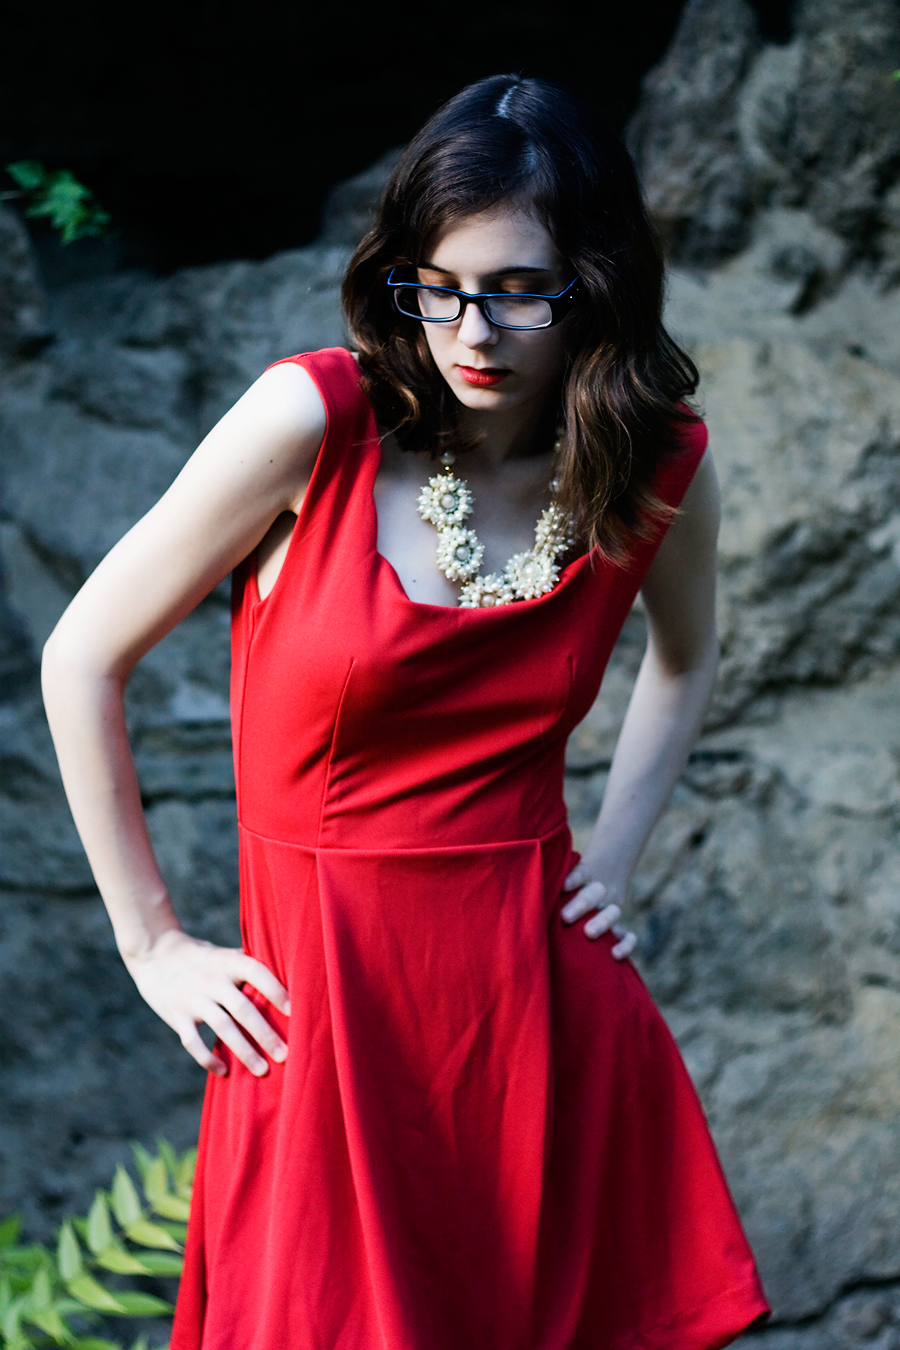 Style / Red Dress & Pearl Cluster Necklace / Lix Hewett